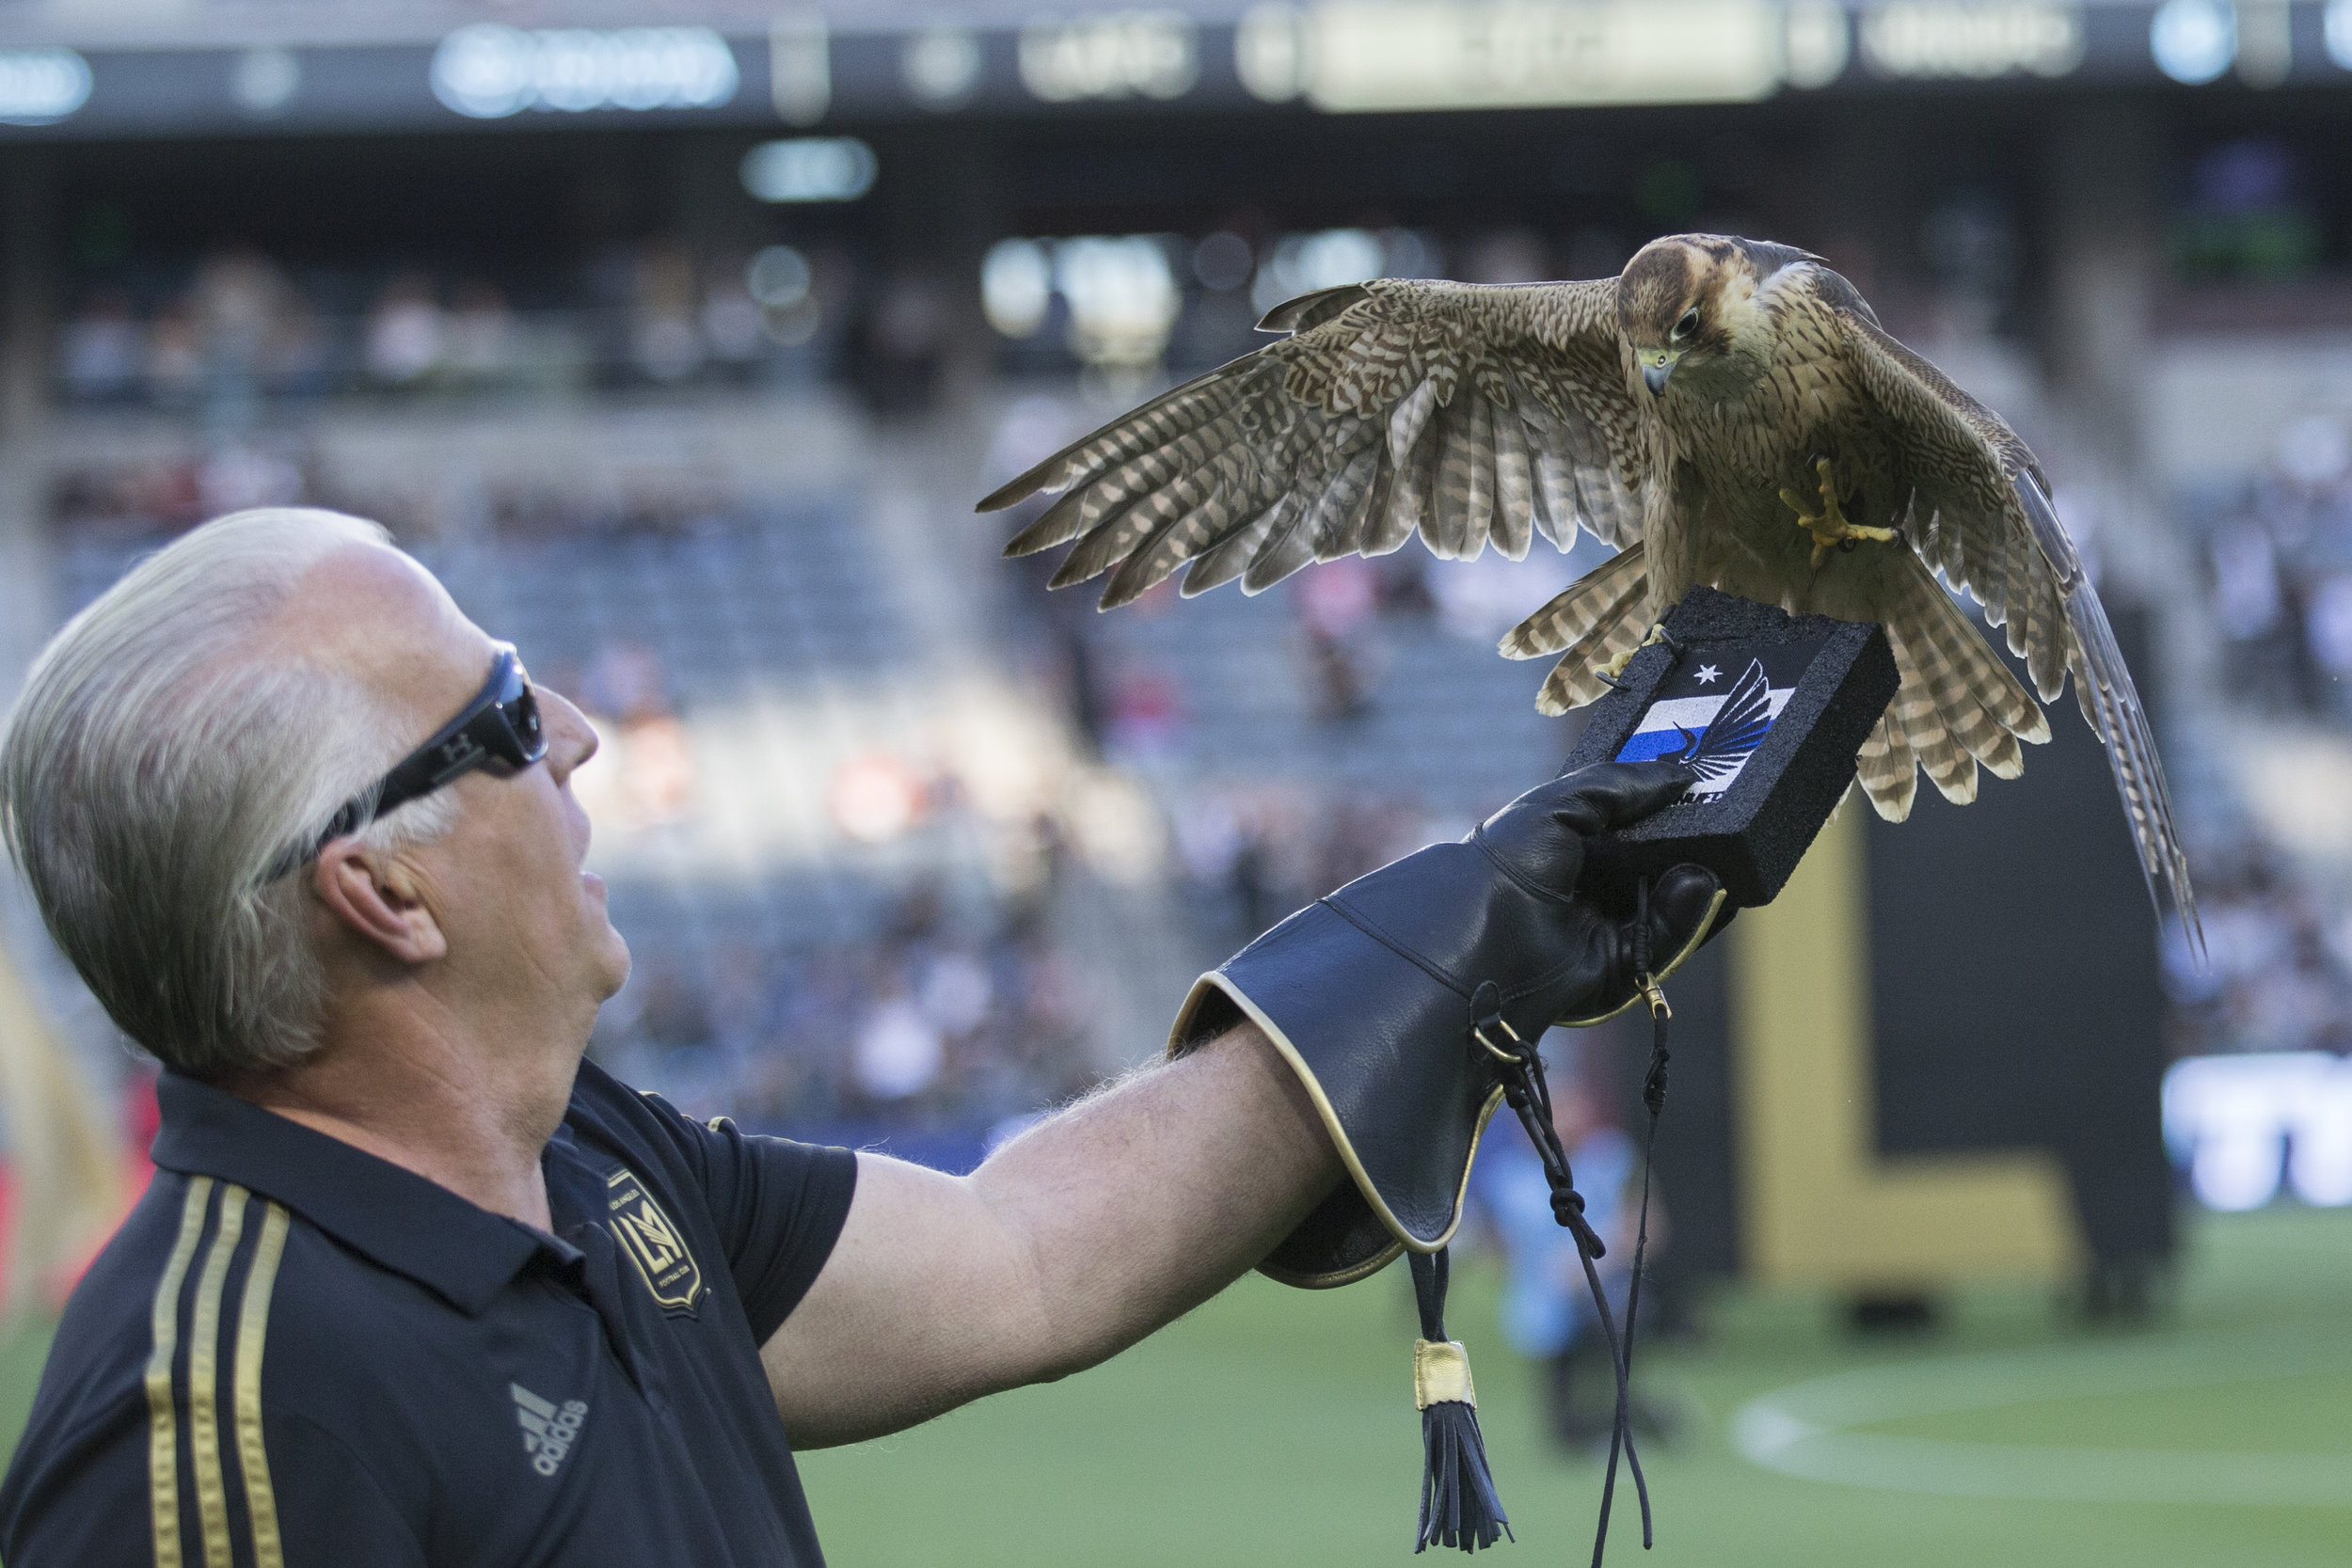 The Los Angeles Football Club (LAFC) mascot, Olly the Falcon, (named after Olvera Street) ends his pre-game fly around at the Banc of California Stadium on May 9, 2018. LAFC beat the Minnesota United Football Club 2-0. (Zane Meyer-Thornton/Corsair Photo)